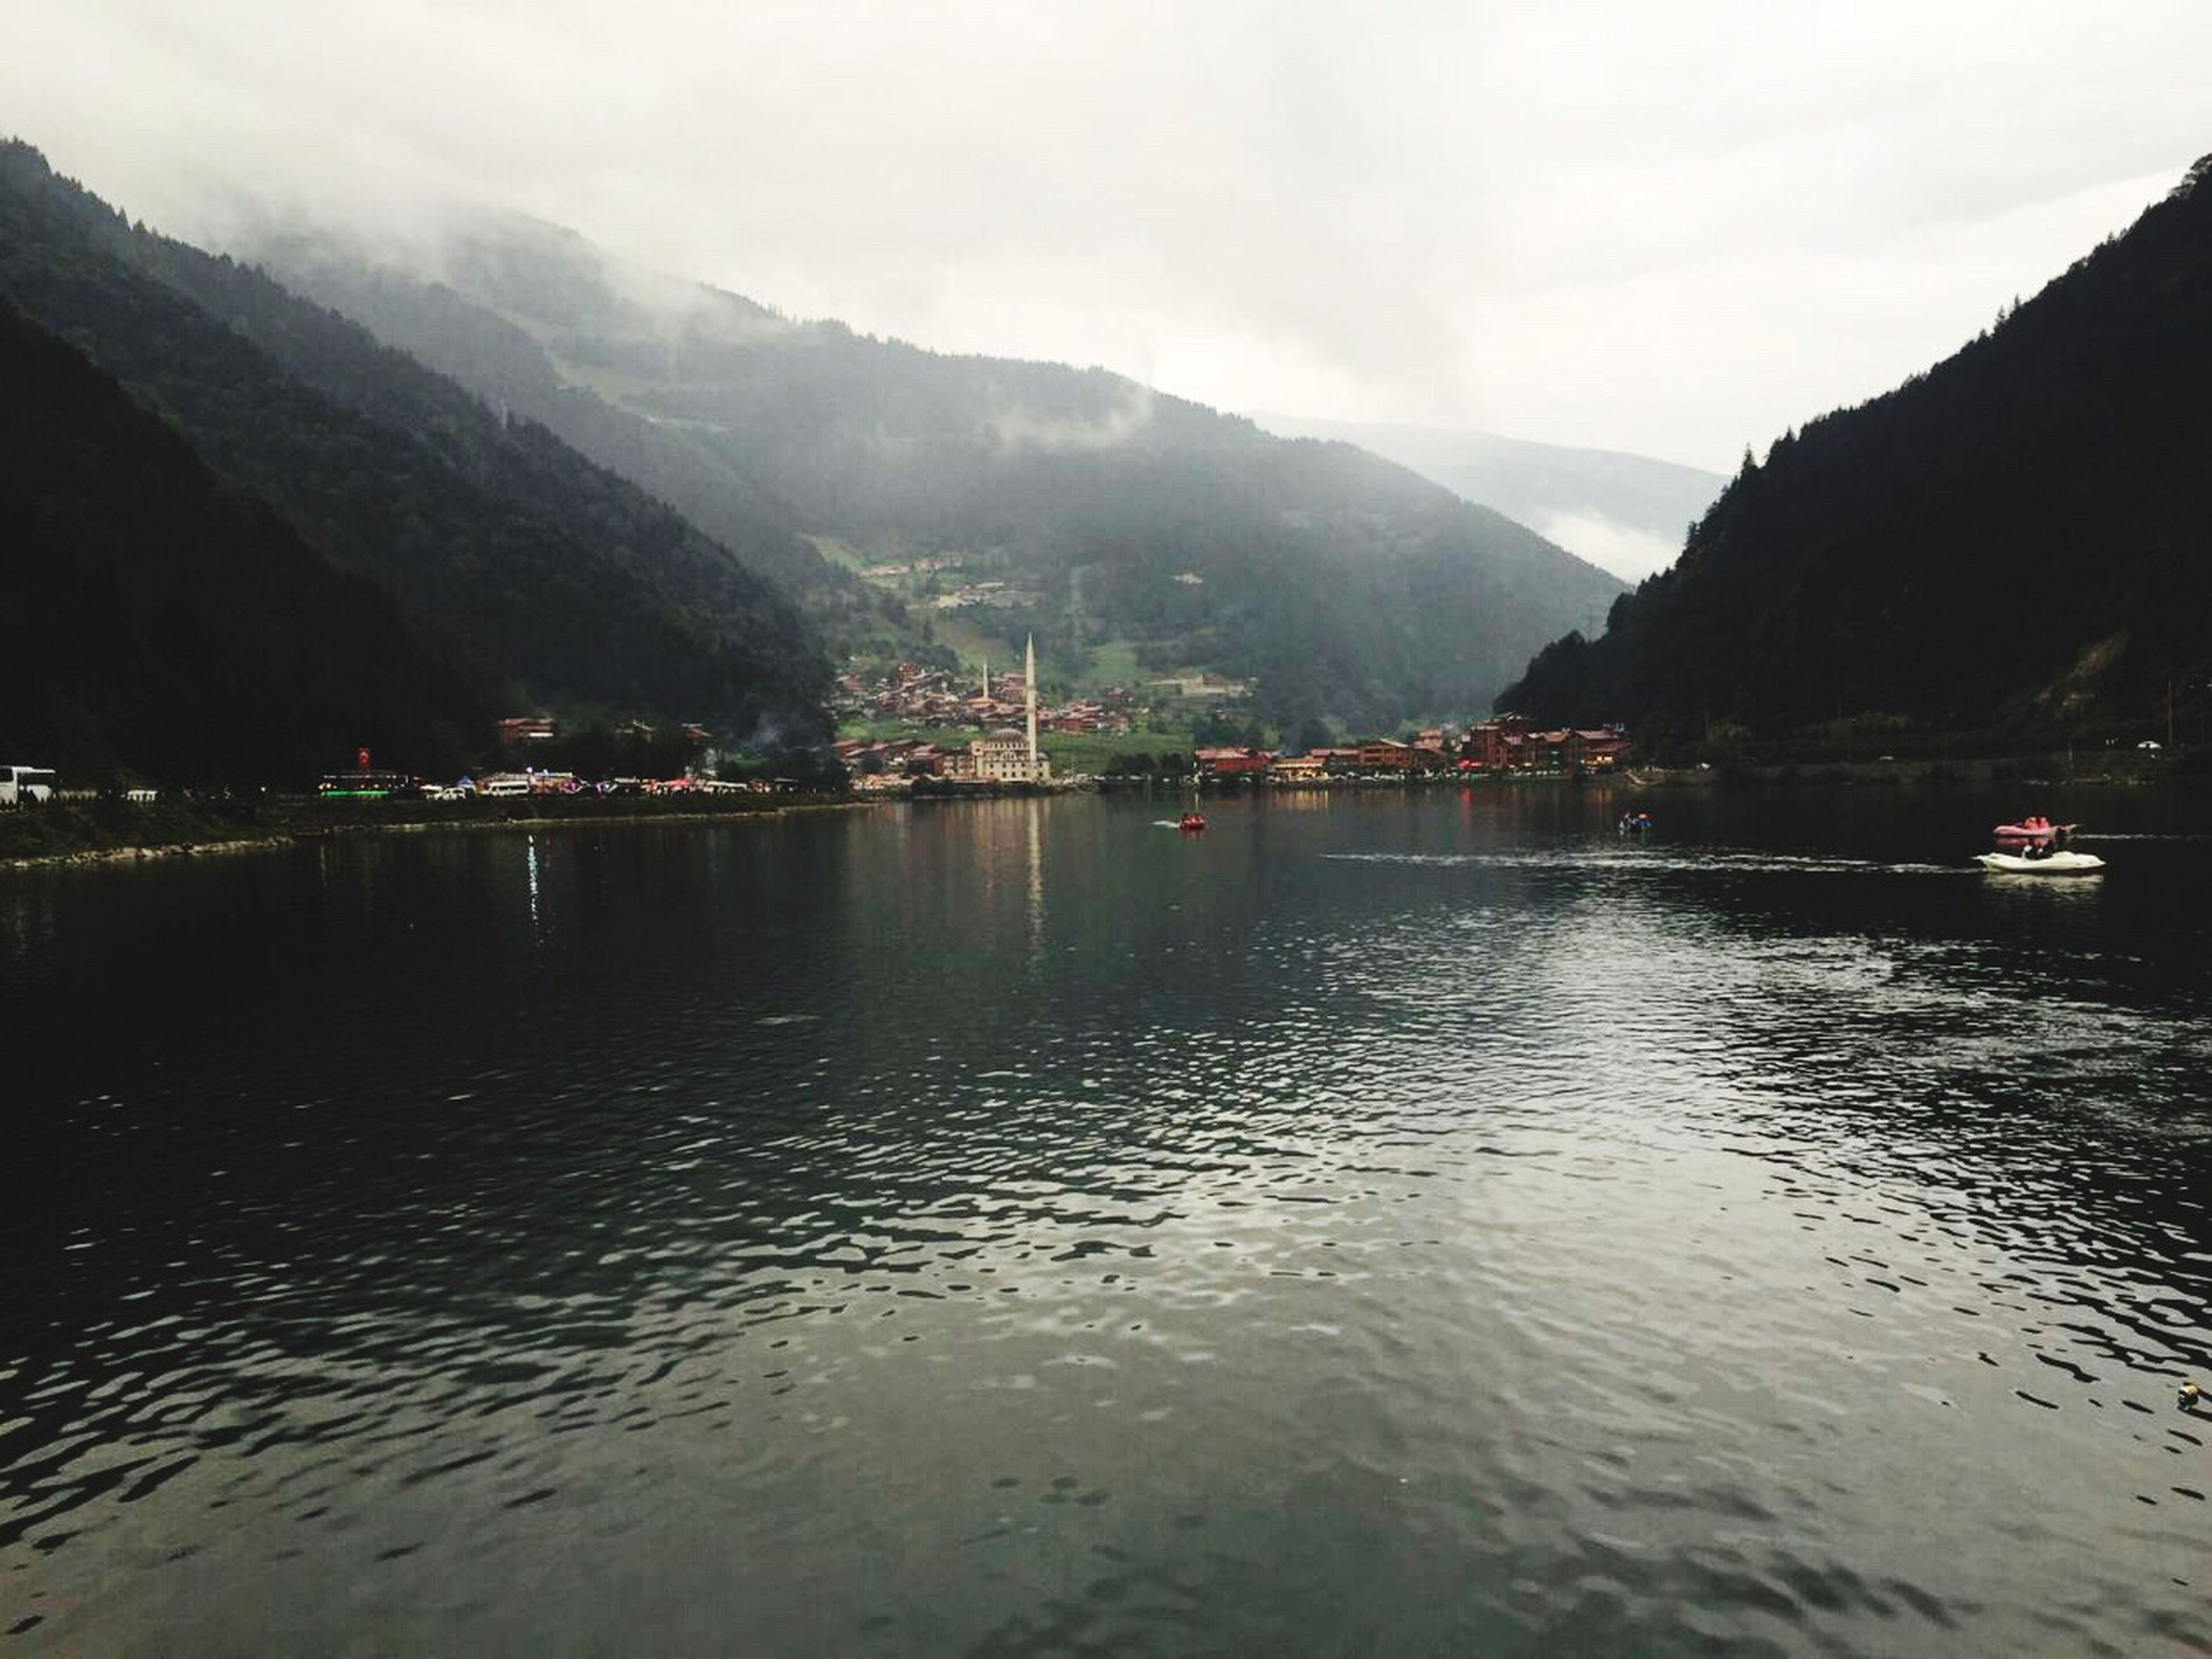 mountain, water, waterfront, reflection, mountain range, tranquility, tranquil scene, scenics, sky, travel destinations, town, cloud, nature, non-urban scene, cloud - sky, beauty in nature, day, water surface, outdoors, vacations, tourism, harbor, no people